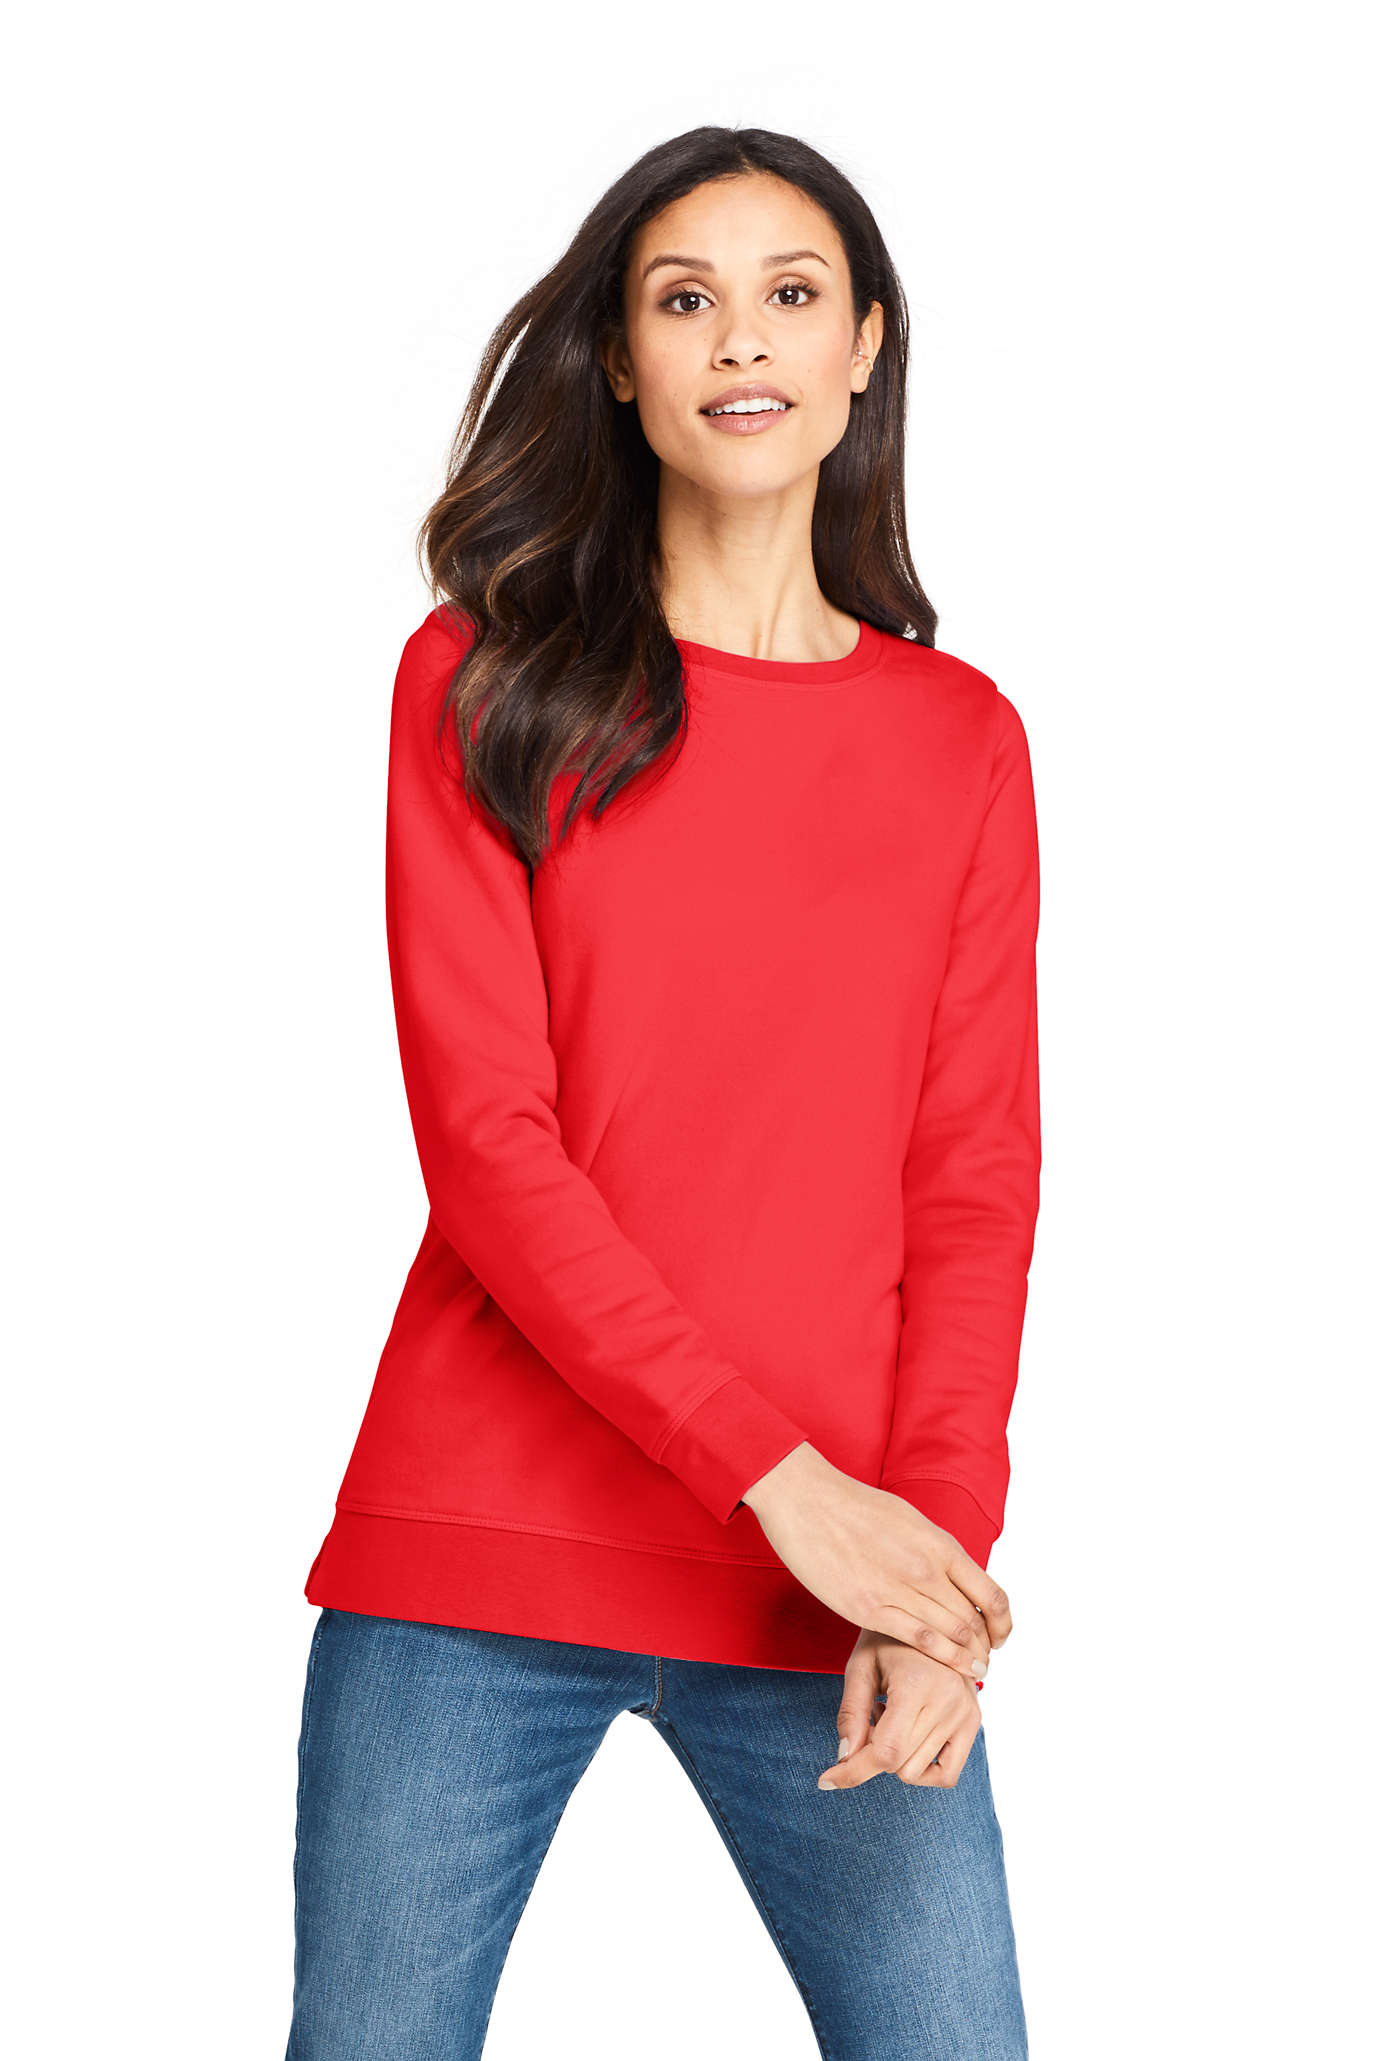 Women's Long Sleeve Sport Knit Jacquard Sweatshirt Tunic